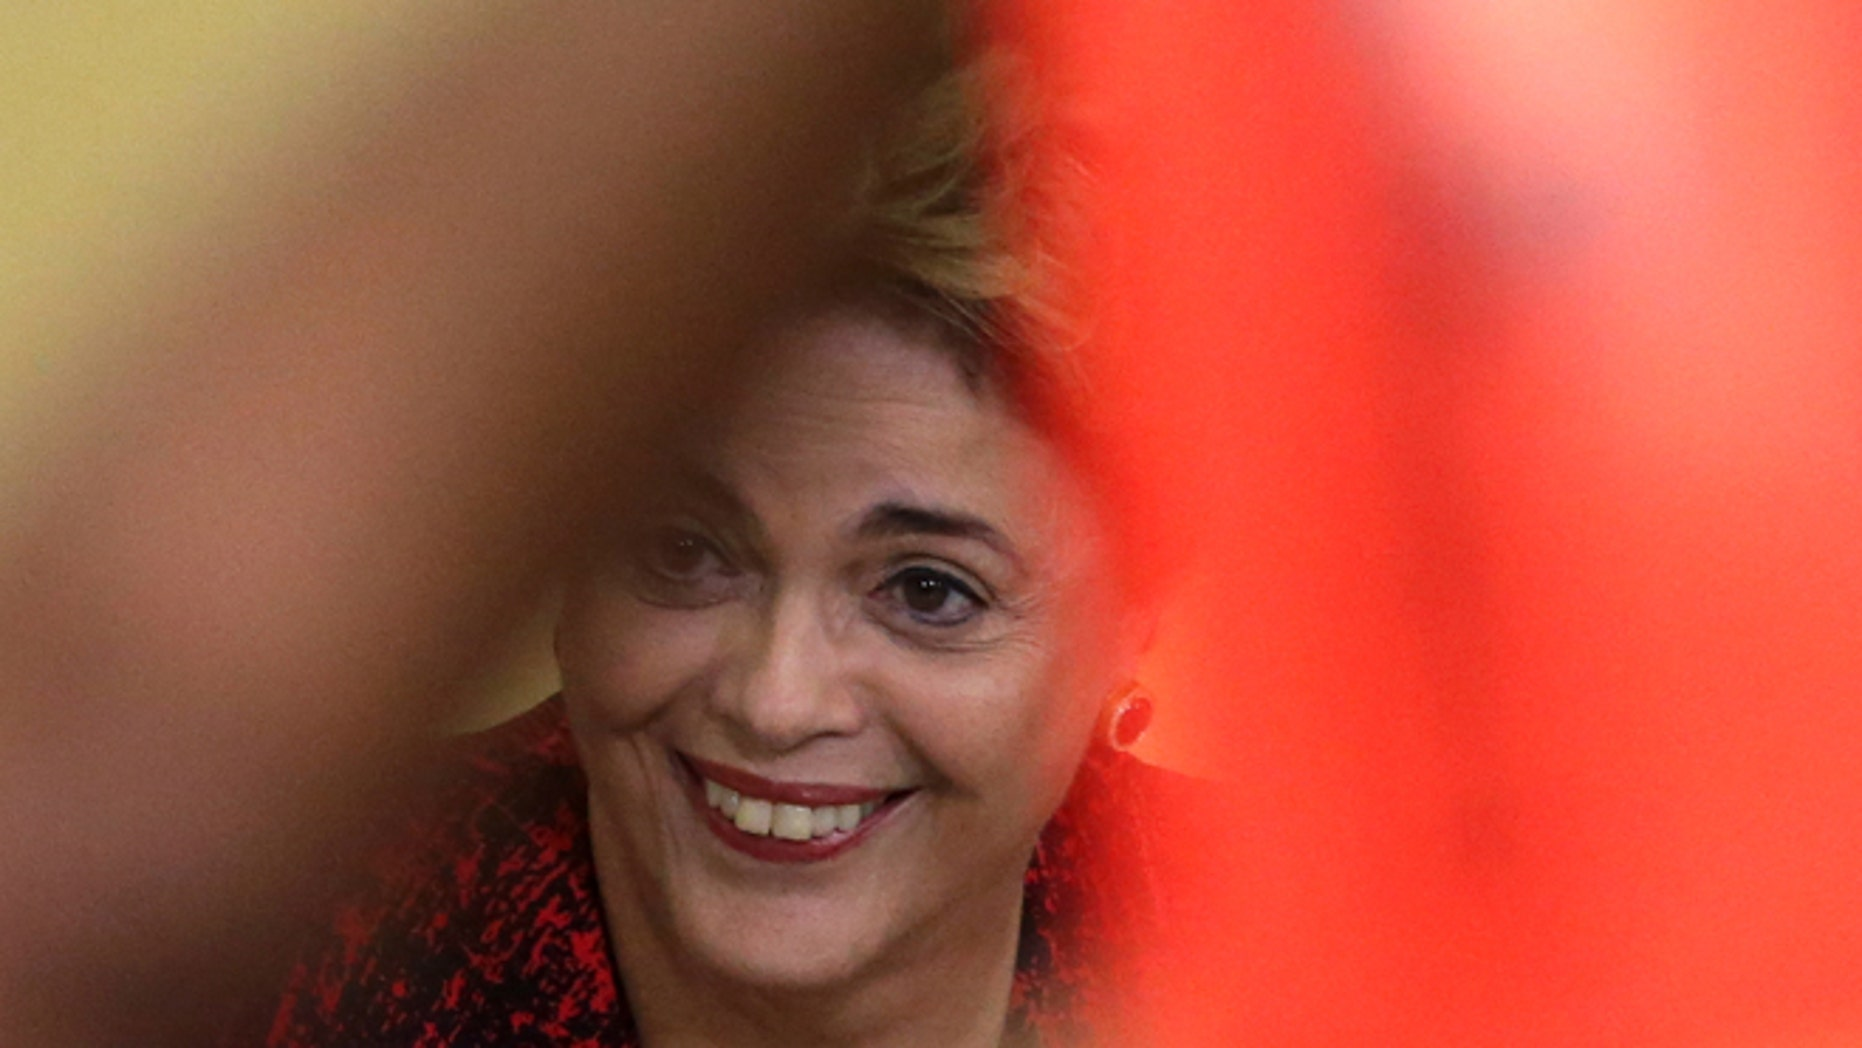 Brazil's President Dilma Rousseff smiles during a ceremony where she announced the opening of new federal universities at Planalto presidential palace in Brasilia, Brazil, Monday, May 9, 2016. The acting speaker of the lower house of Brazil's Congress on Monday annulled last month's vote on impeachment, delaying and complicating the process that was widely expected to see Rousseff suspended later this week.  (AP Photo/Eraldo Peres)